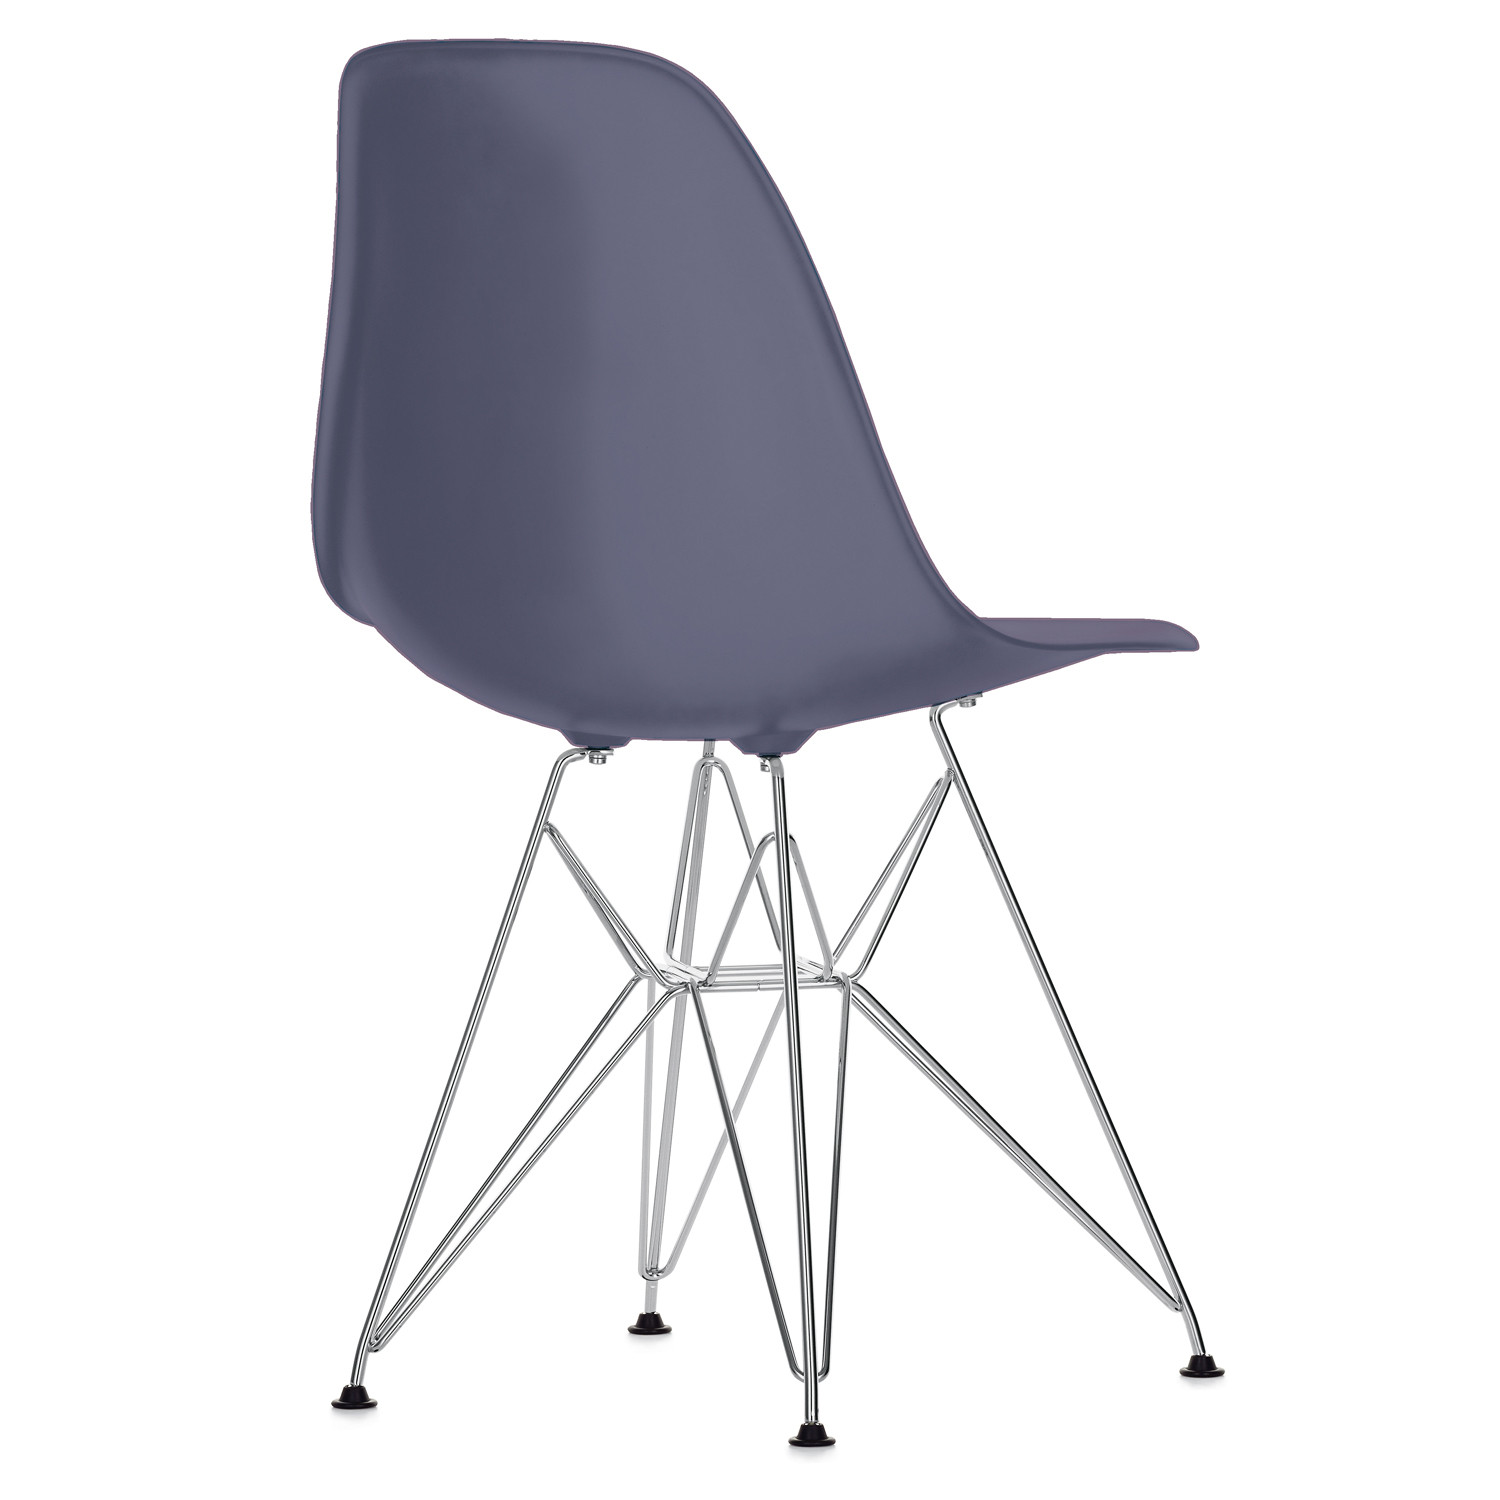 Eames plastic chair eames molded plastic chairs with for Cheap eames style chair